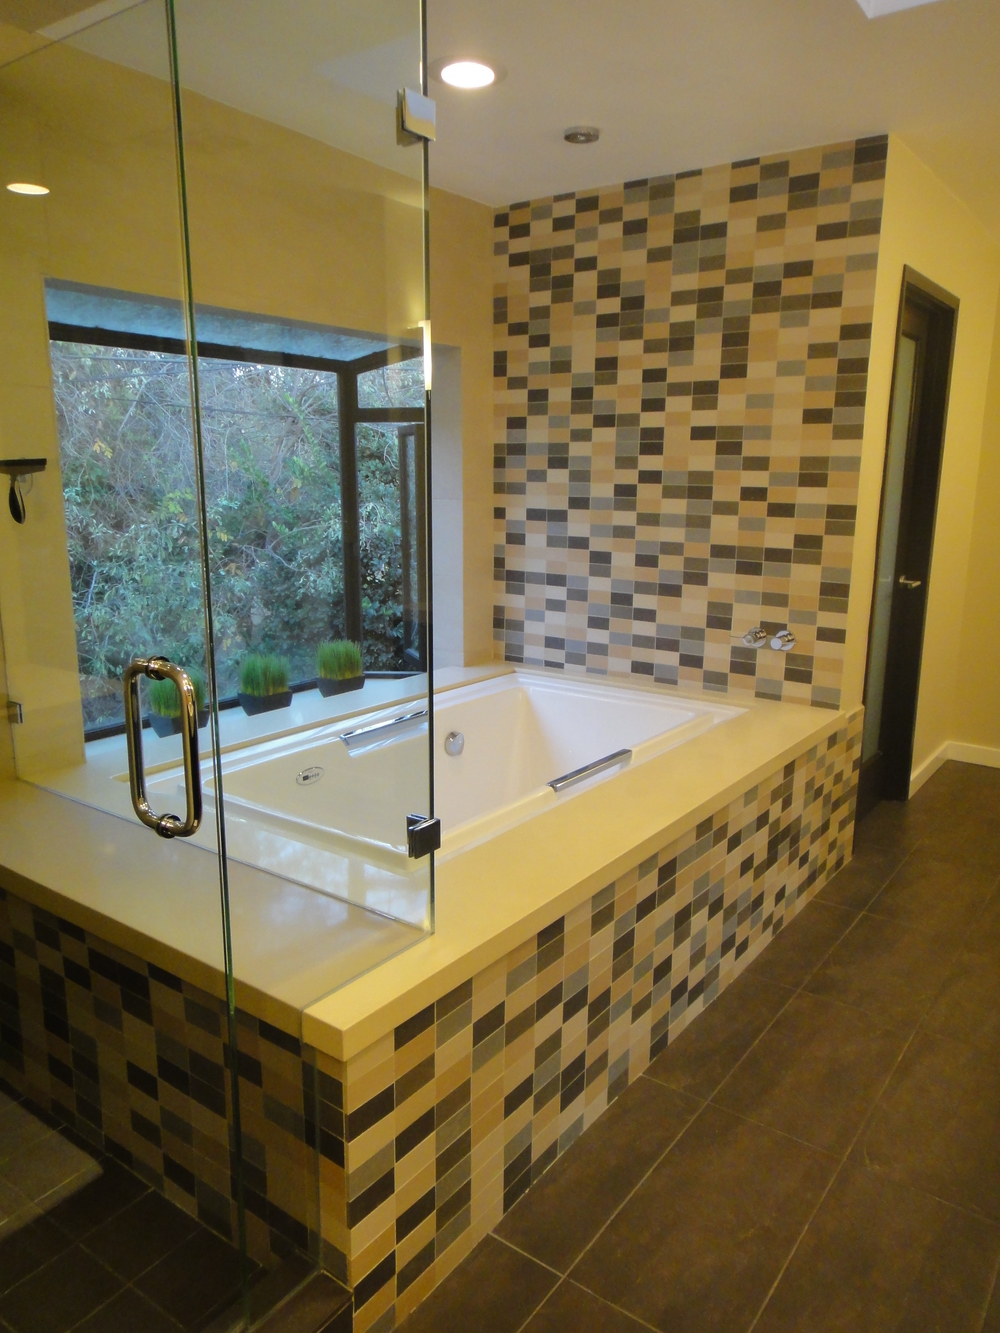 new fills modern contemporary tile solomon hers wall studio feature porcelain height full page fersht his has from bathroom accent great this and is tub the beautiful with vanity a